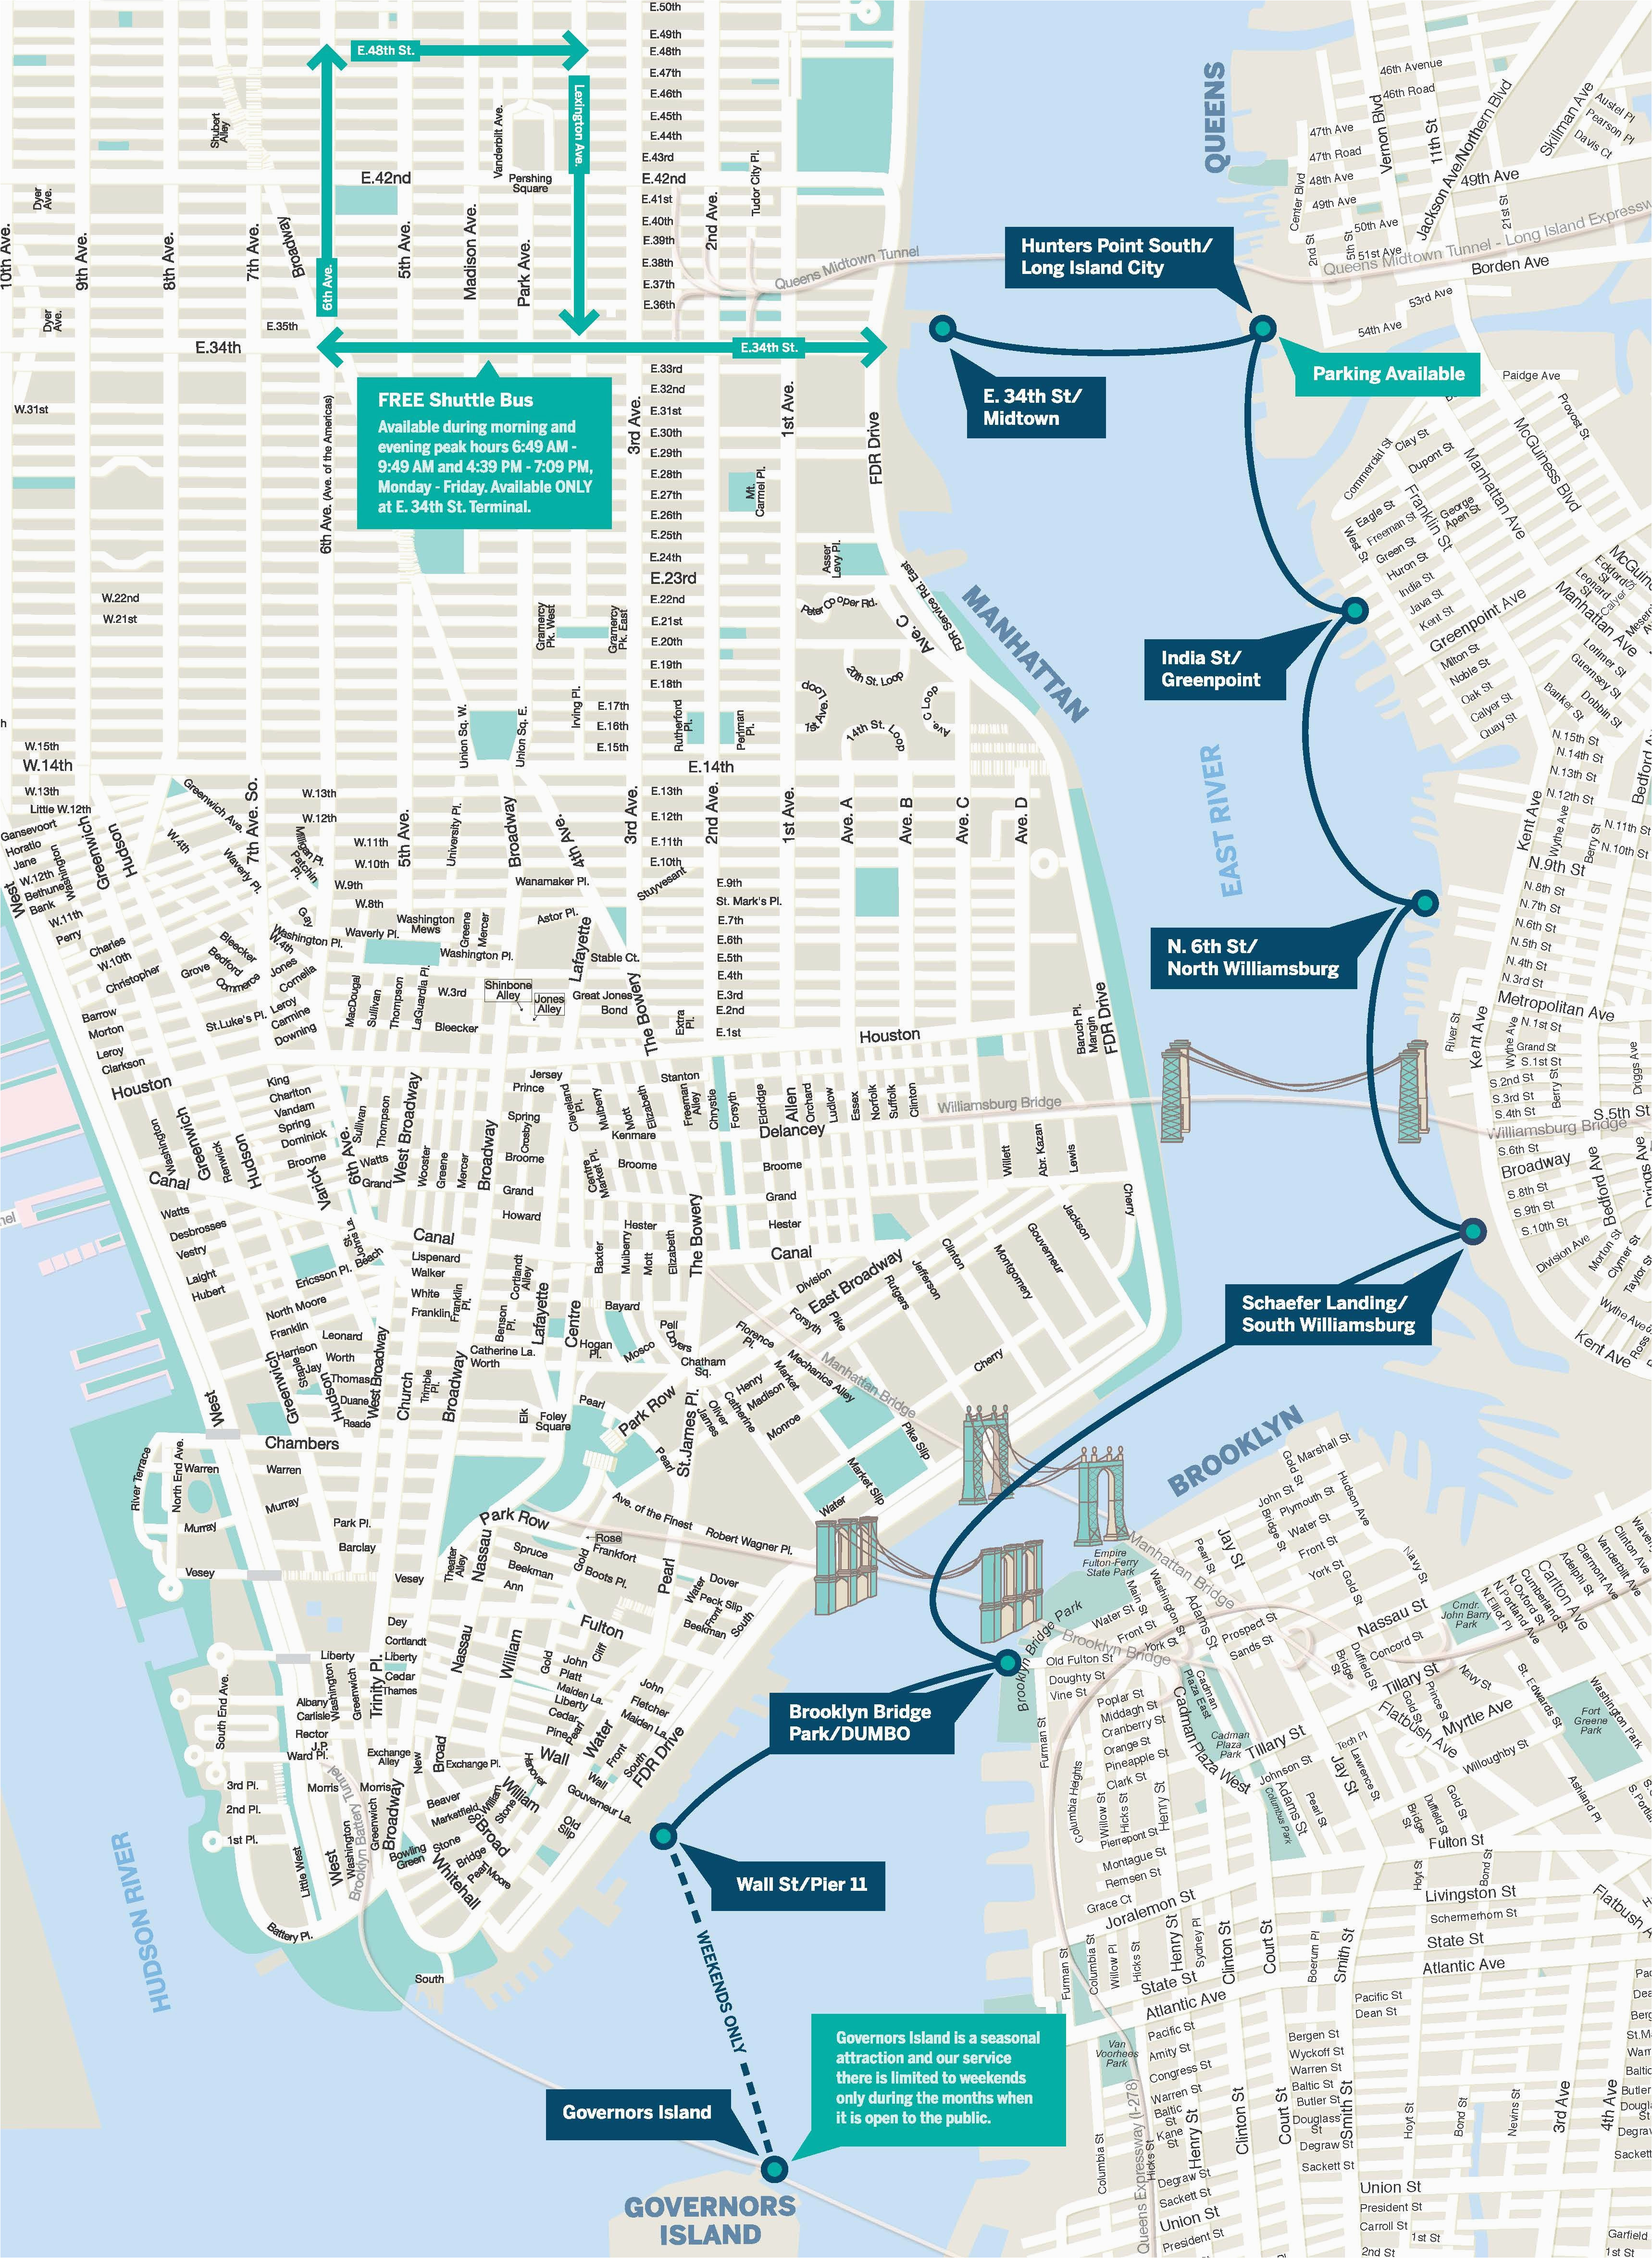 North Carolina Ferry System Map East River Ferry Route Map New York Trip Pinterest New York